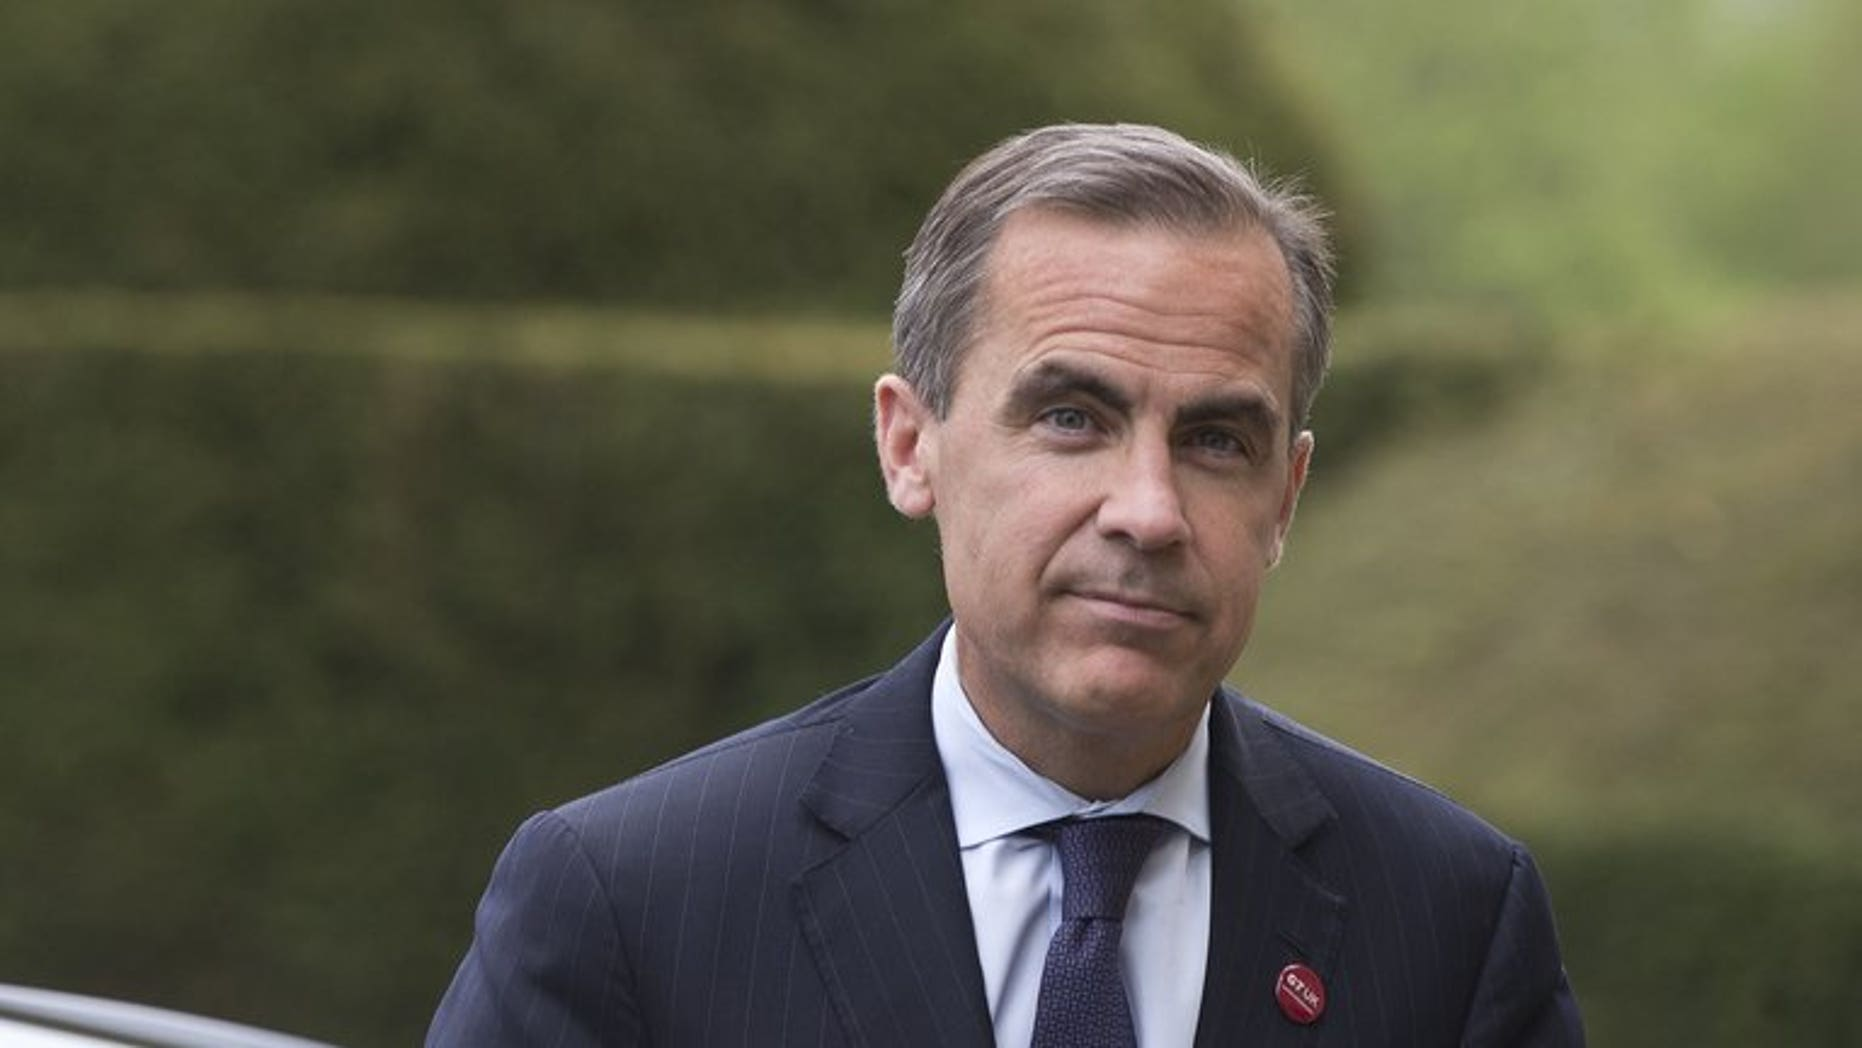 Canadian Mark Carney, pictured in May, 2013, begins his job as governor of the Bank of England on Monday, joining an institution divided on whether to pump out more cash stimulus to boost Britain's fragile economic recovery